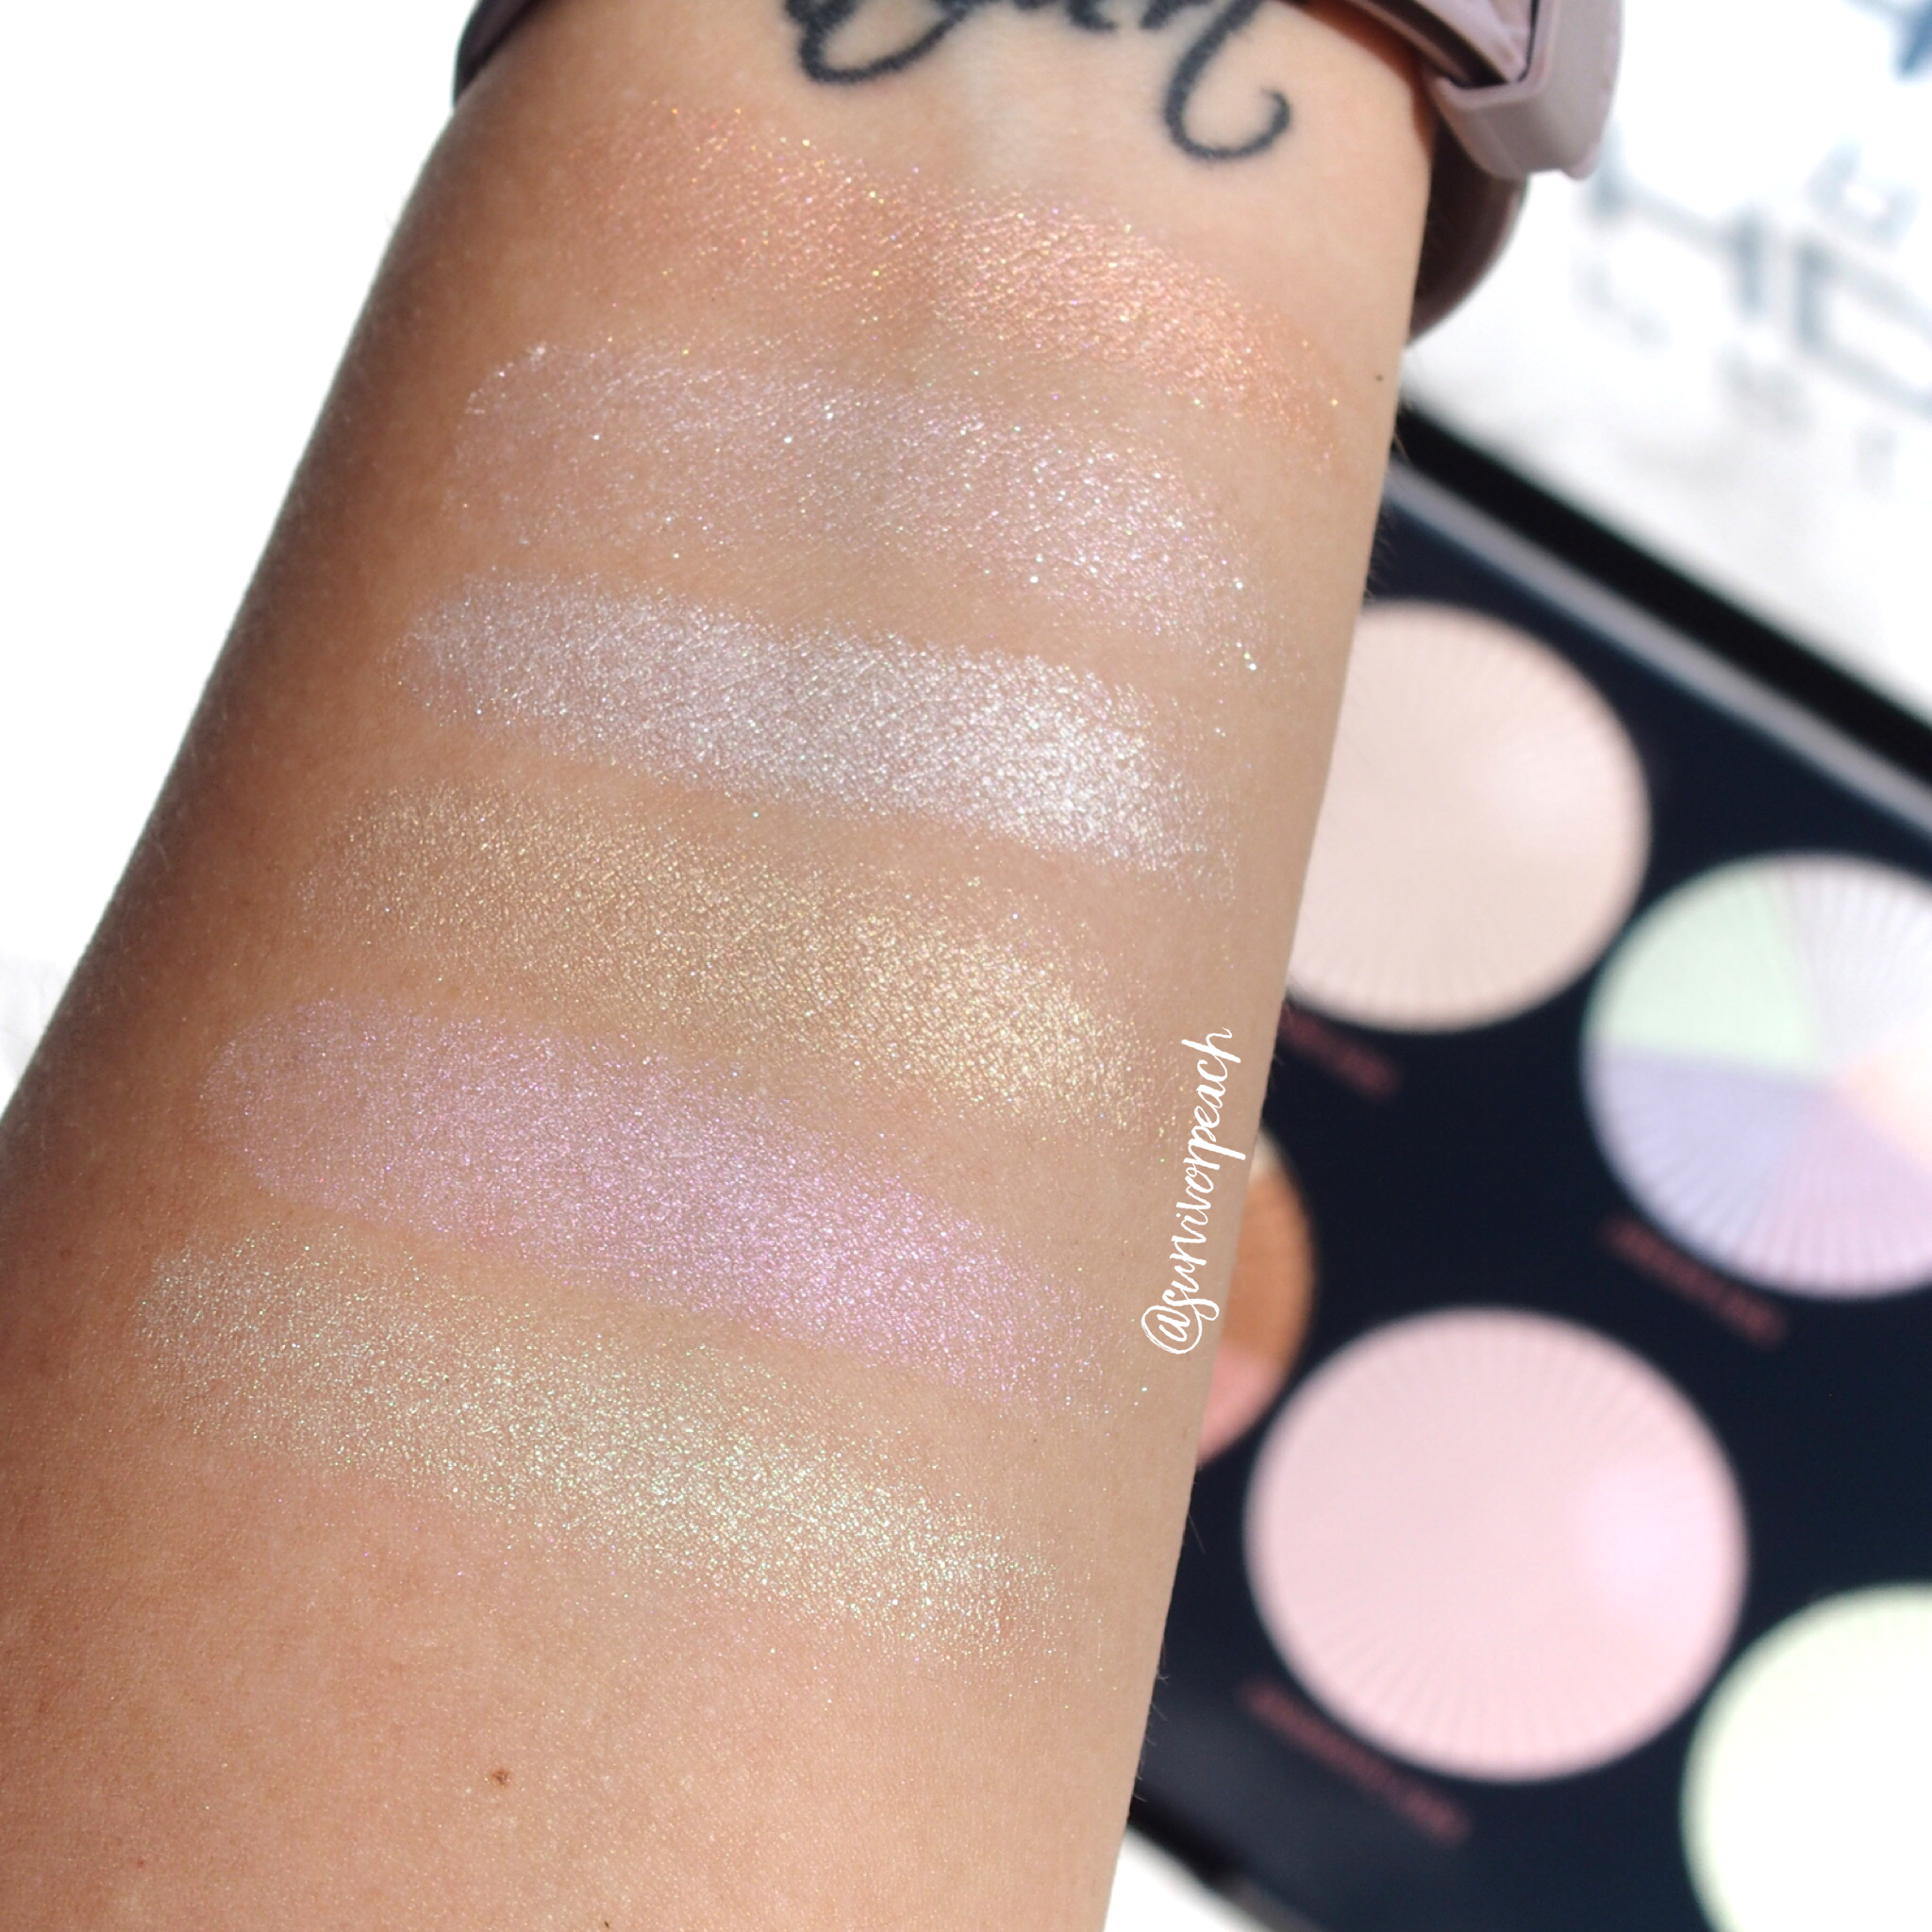 Makeup Revolution Pro HD Glow Getter palette swatches in shade 1. Rose Gold Kiss 2. Champagne Kiss 3. Glow Kiss 4.Golden Kiss 5.Prismatic Kiss 6. Mint kiss